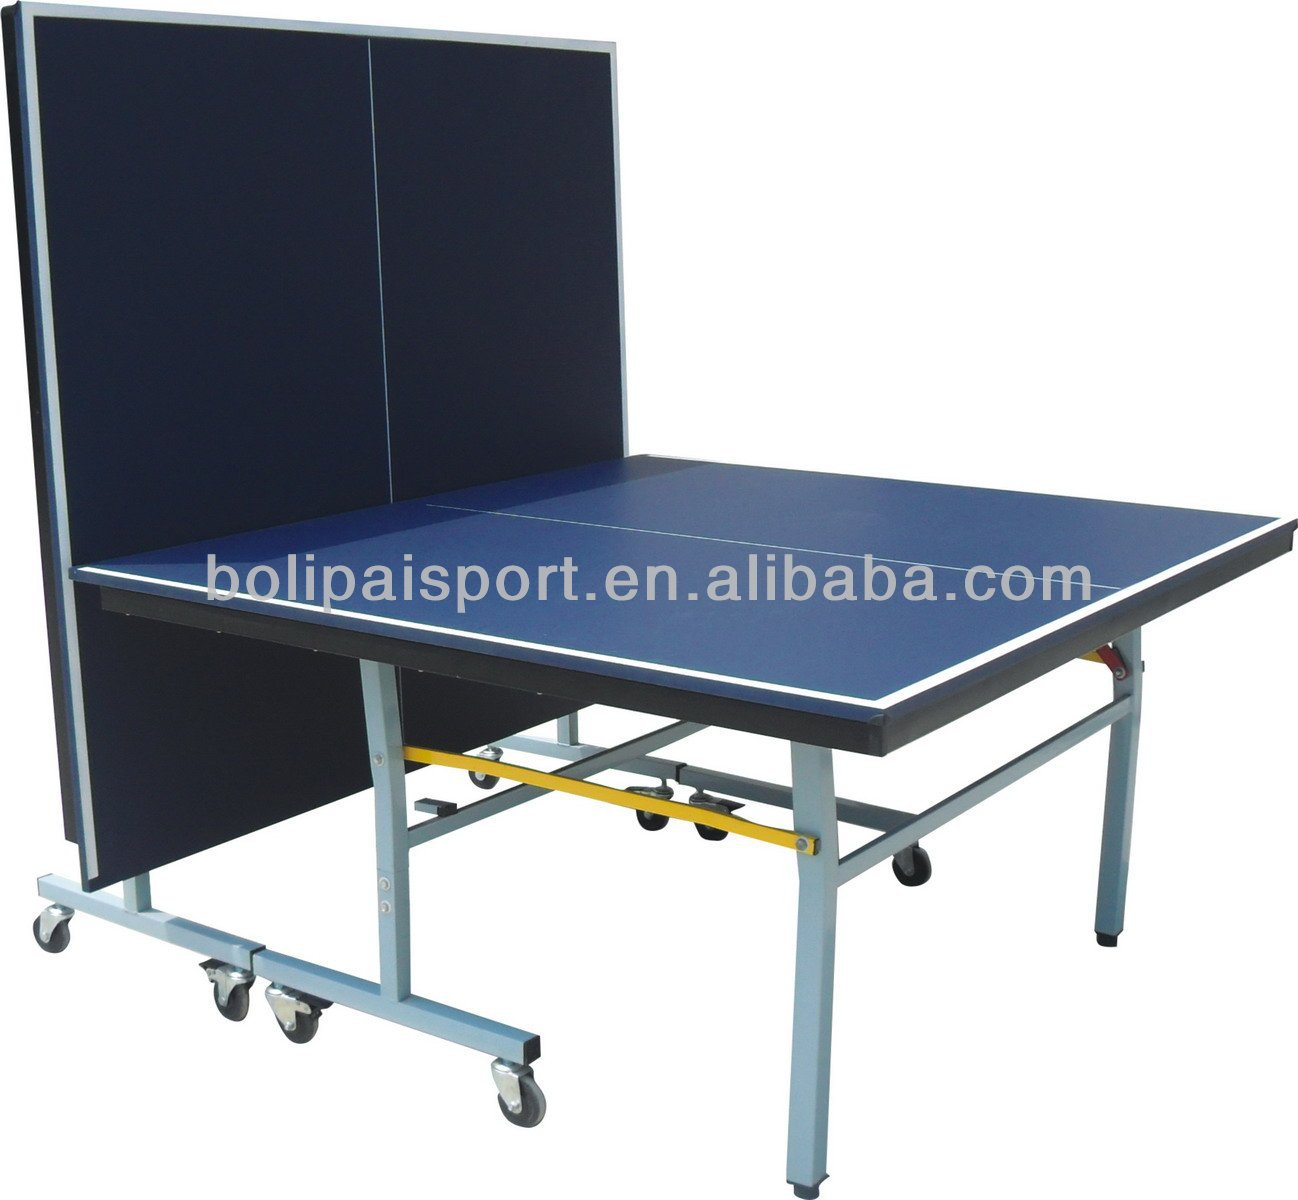 folding table legs ping pong table folding table legs ping pong table suppliers and at alibabacom